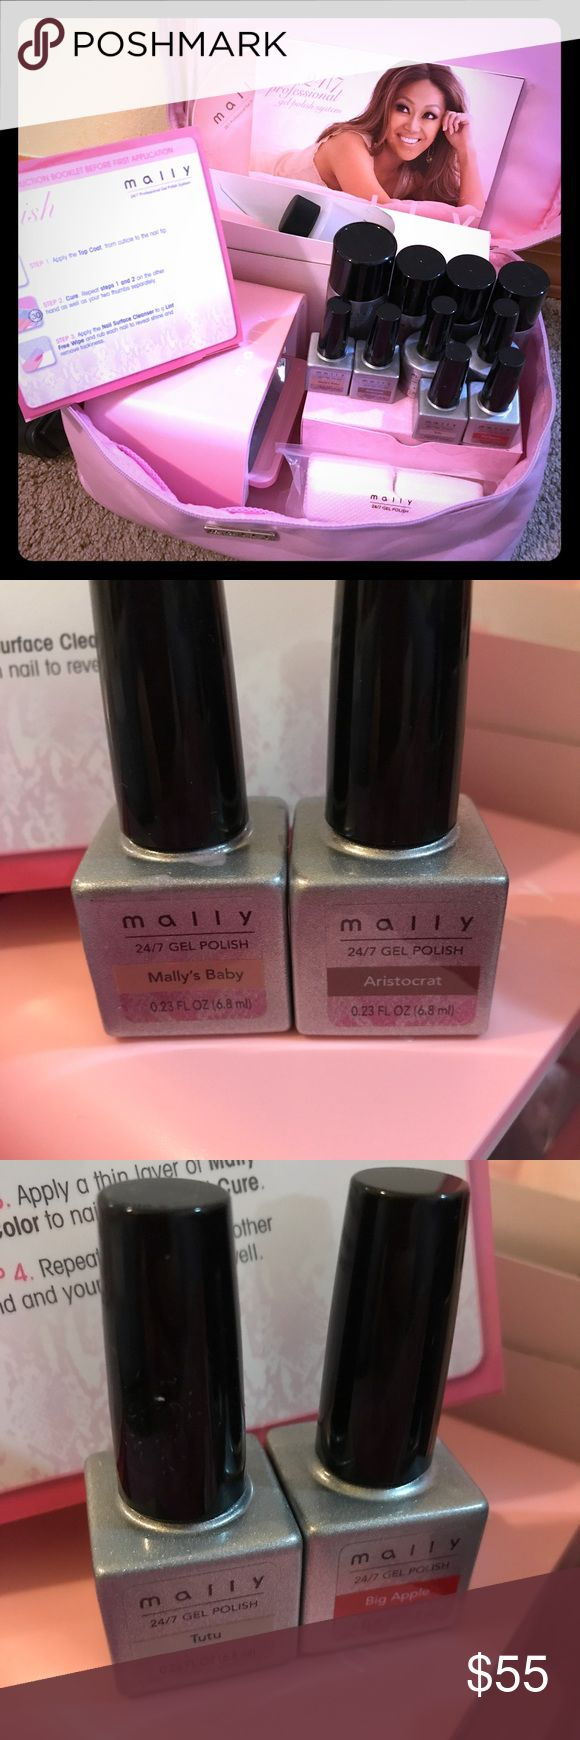 At Home Gel Nails by Mally At Home DIY Gel Nail Set by Mally You get everything shown in photo. This is an awesome set up that I've only used a few times. The colors are beautiful and last quite a while! This same set is sold out online and retails for $168 new. Have questions? Feel free to ask! Mally Accessories